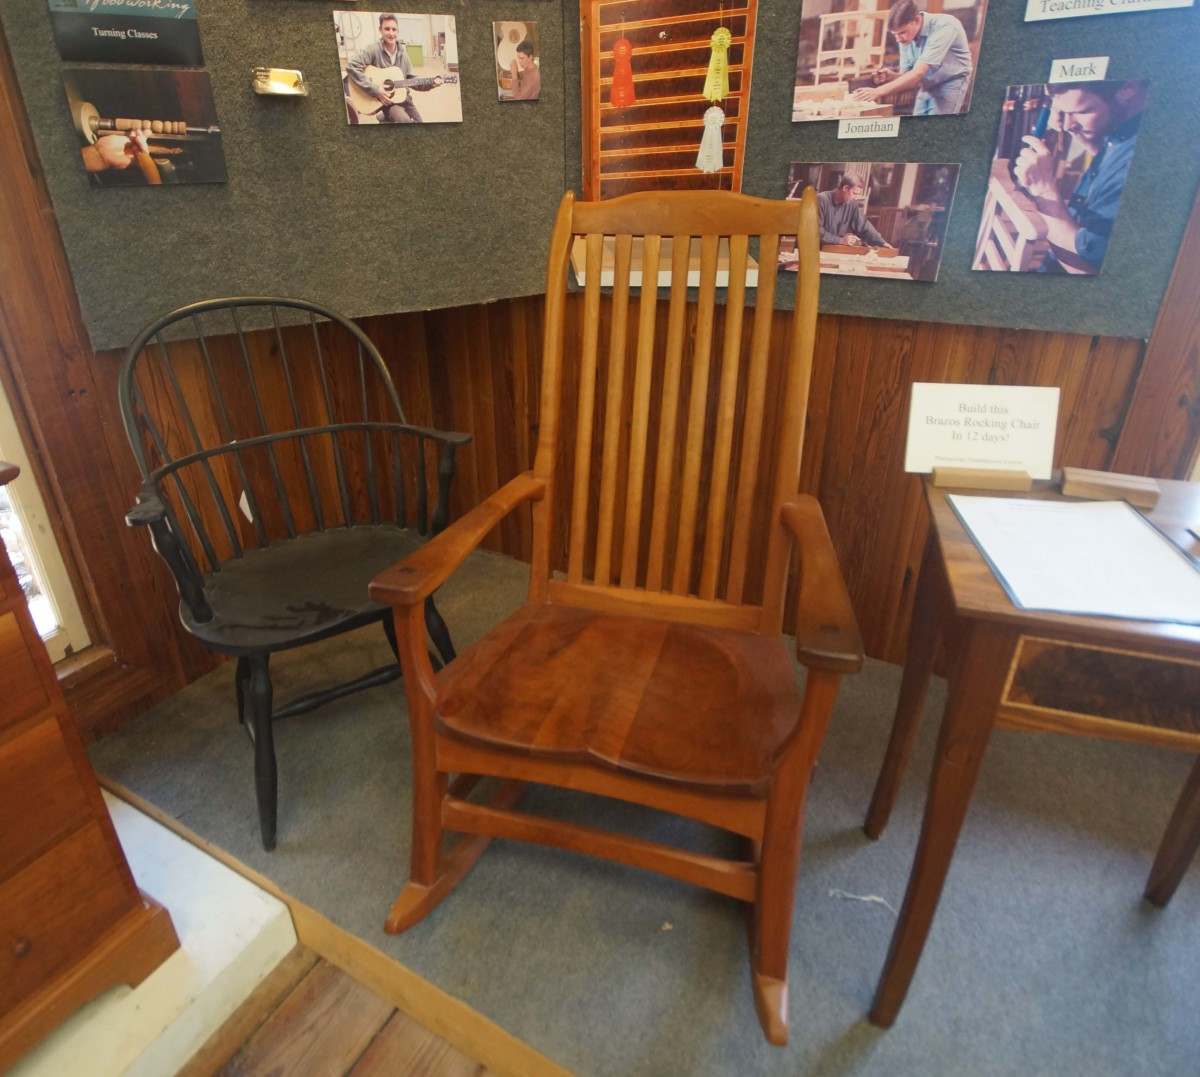 A Windsor chair is featured to the left.  The other rocking chair style is unknown.